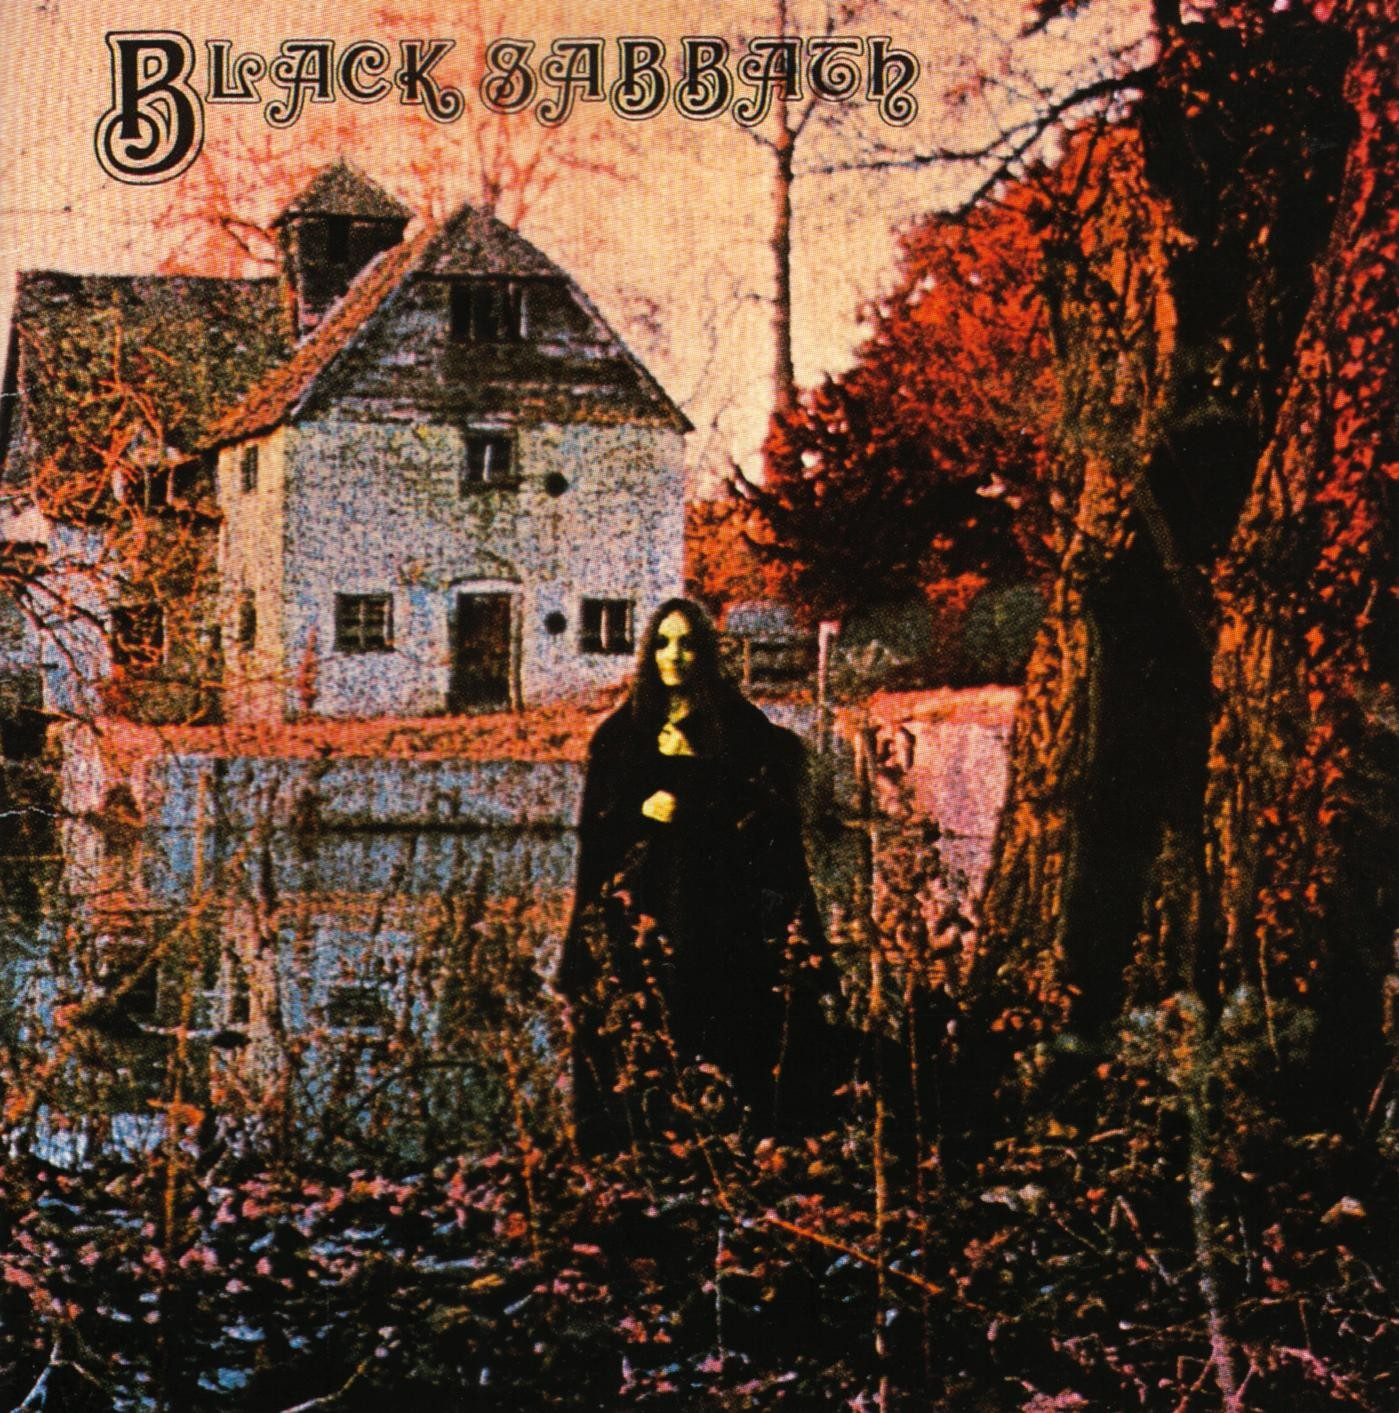 Black Sabbath Debut Album Cover Location Mapledurham Sawmill